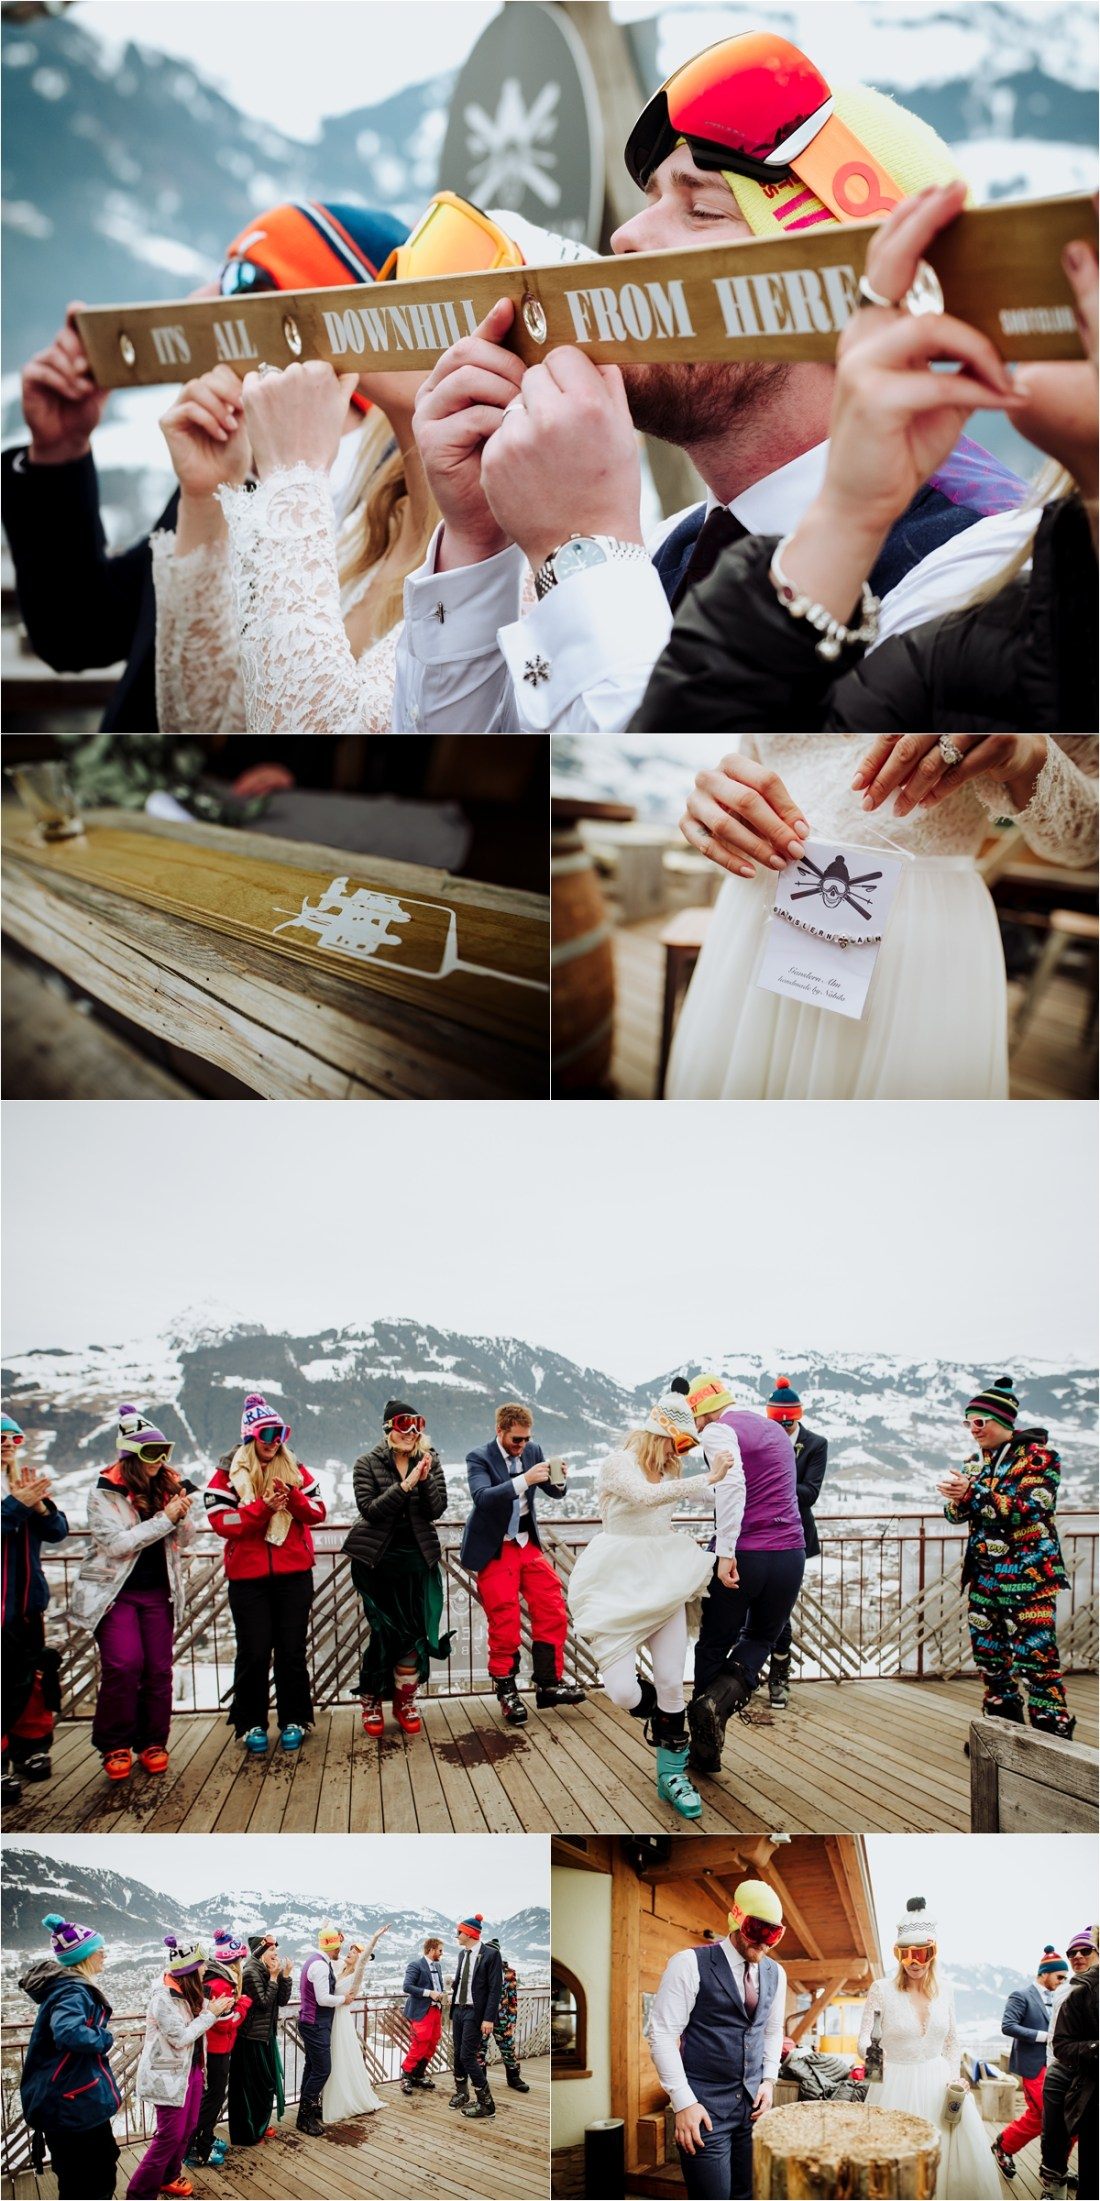 Apres ski celebrations at their ski wedding in Kitzbühel by Wild Connections Photography